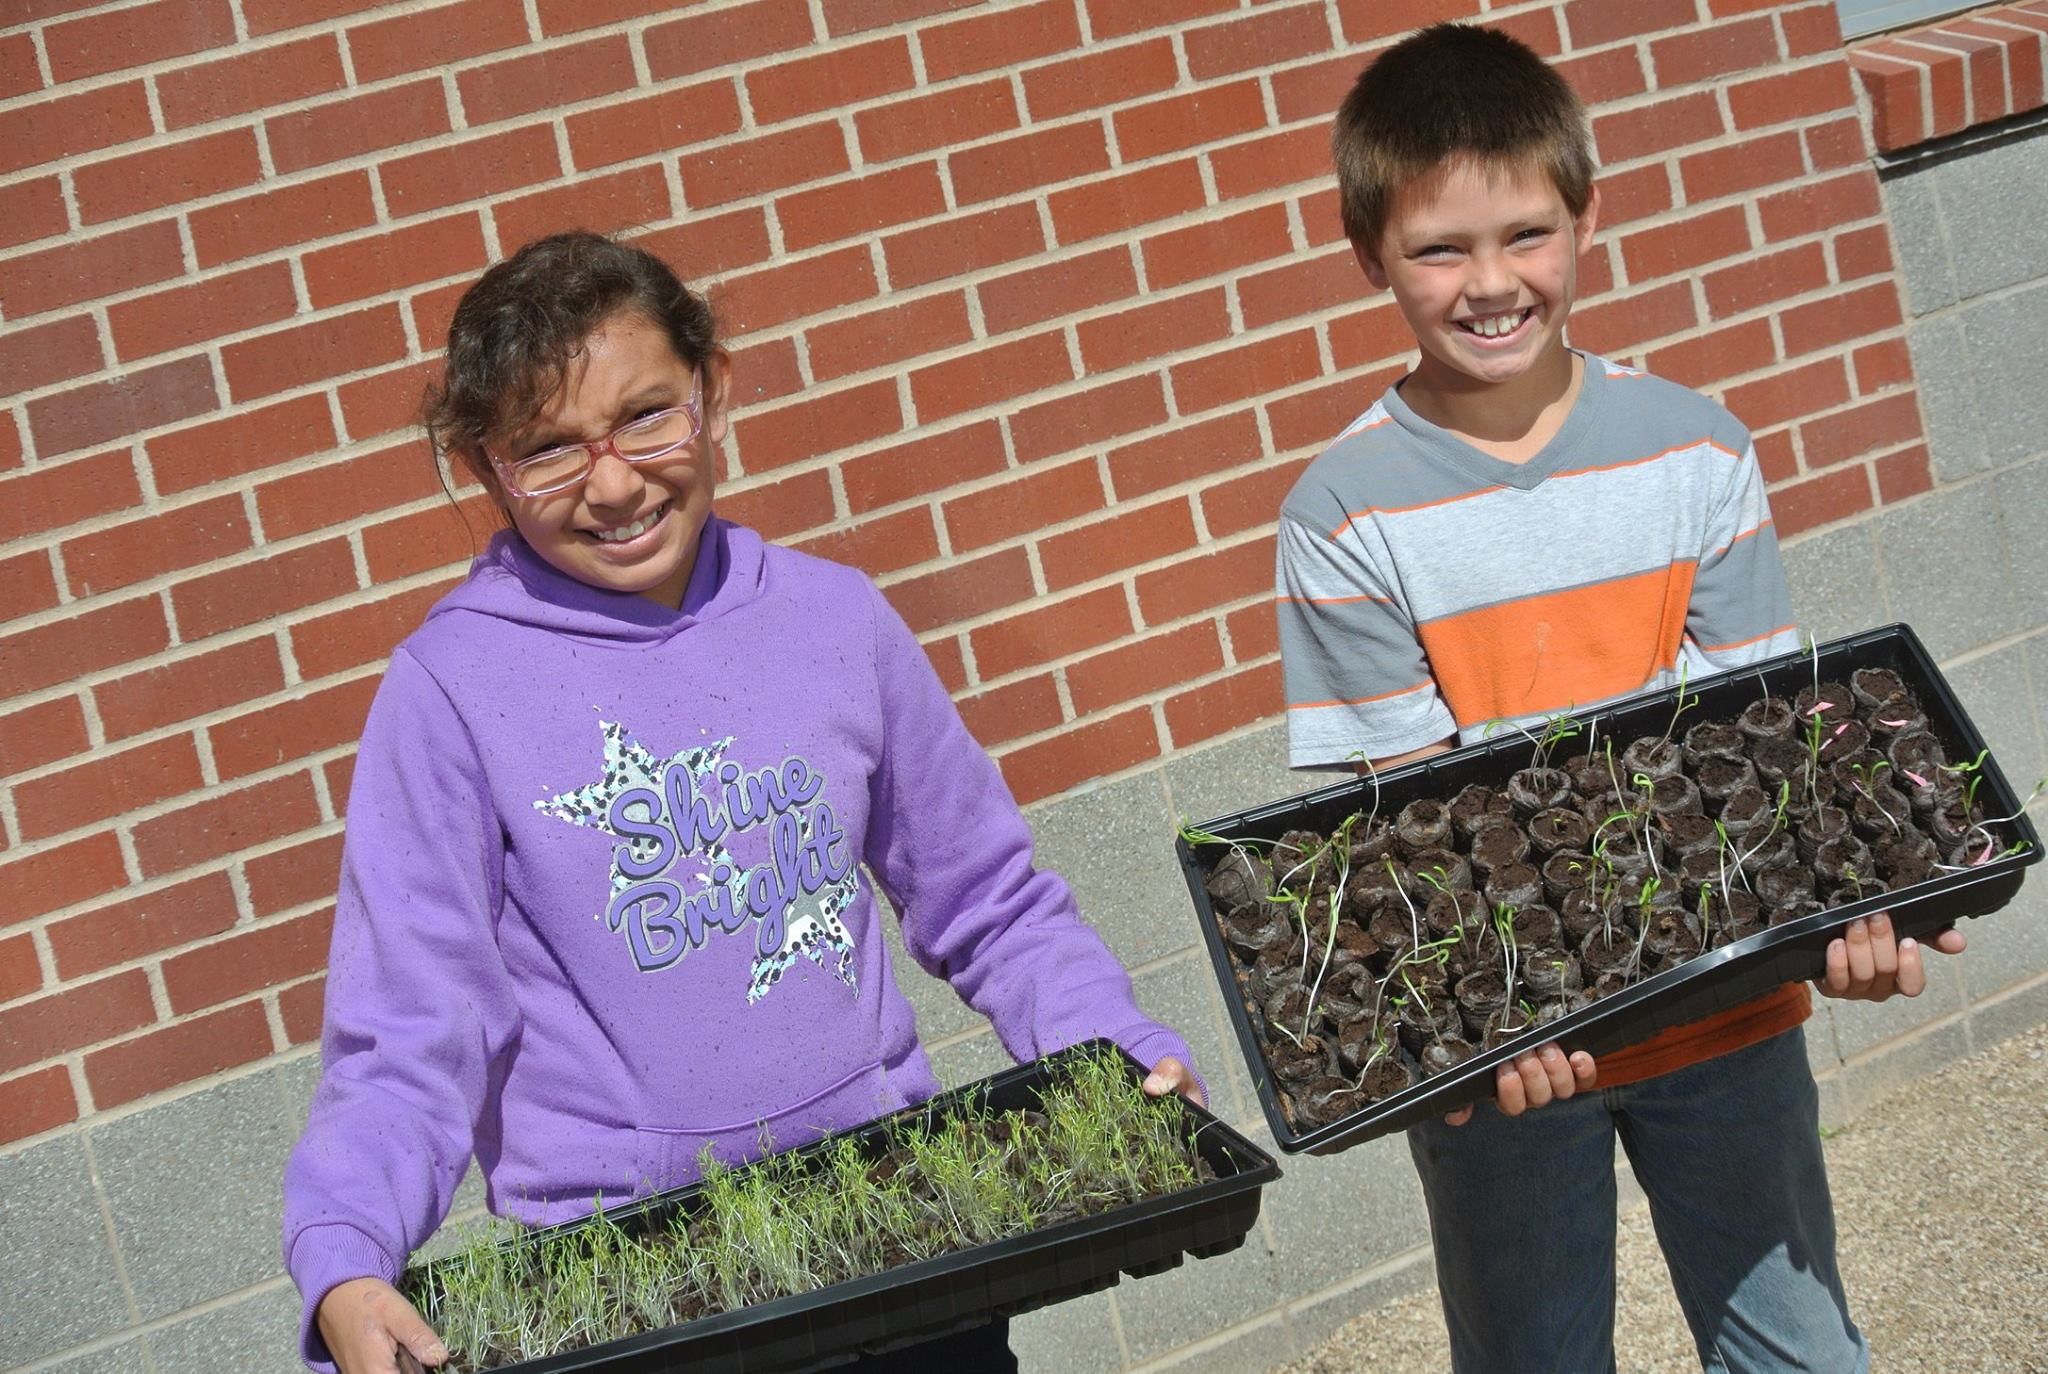 Students holding seedlings